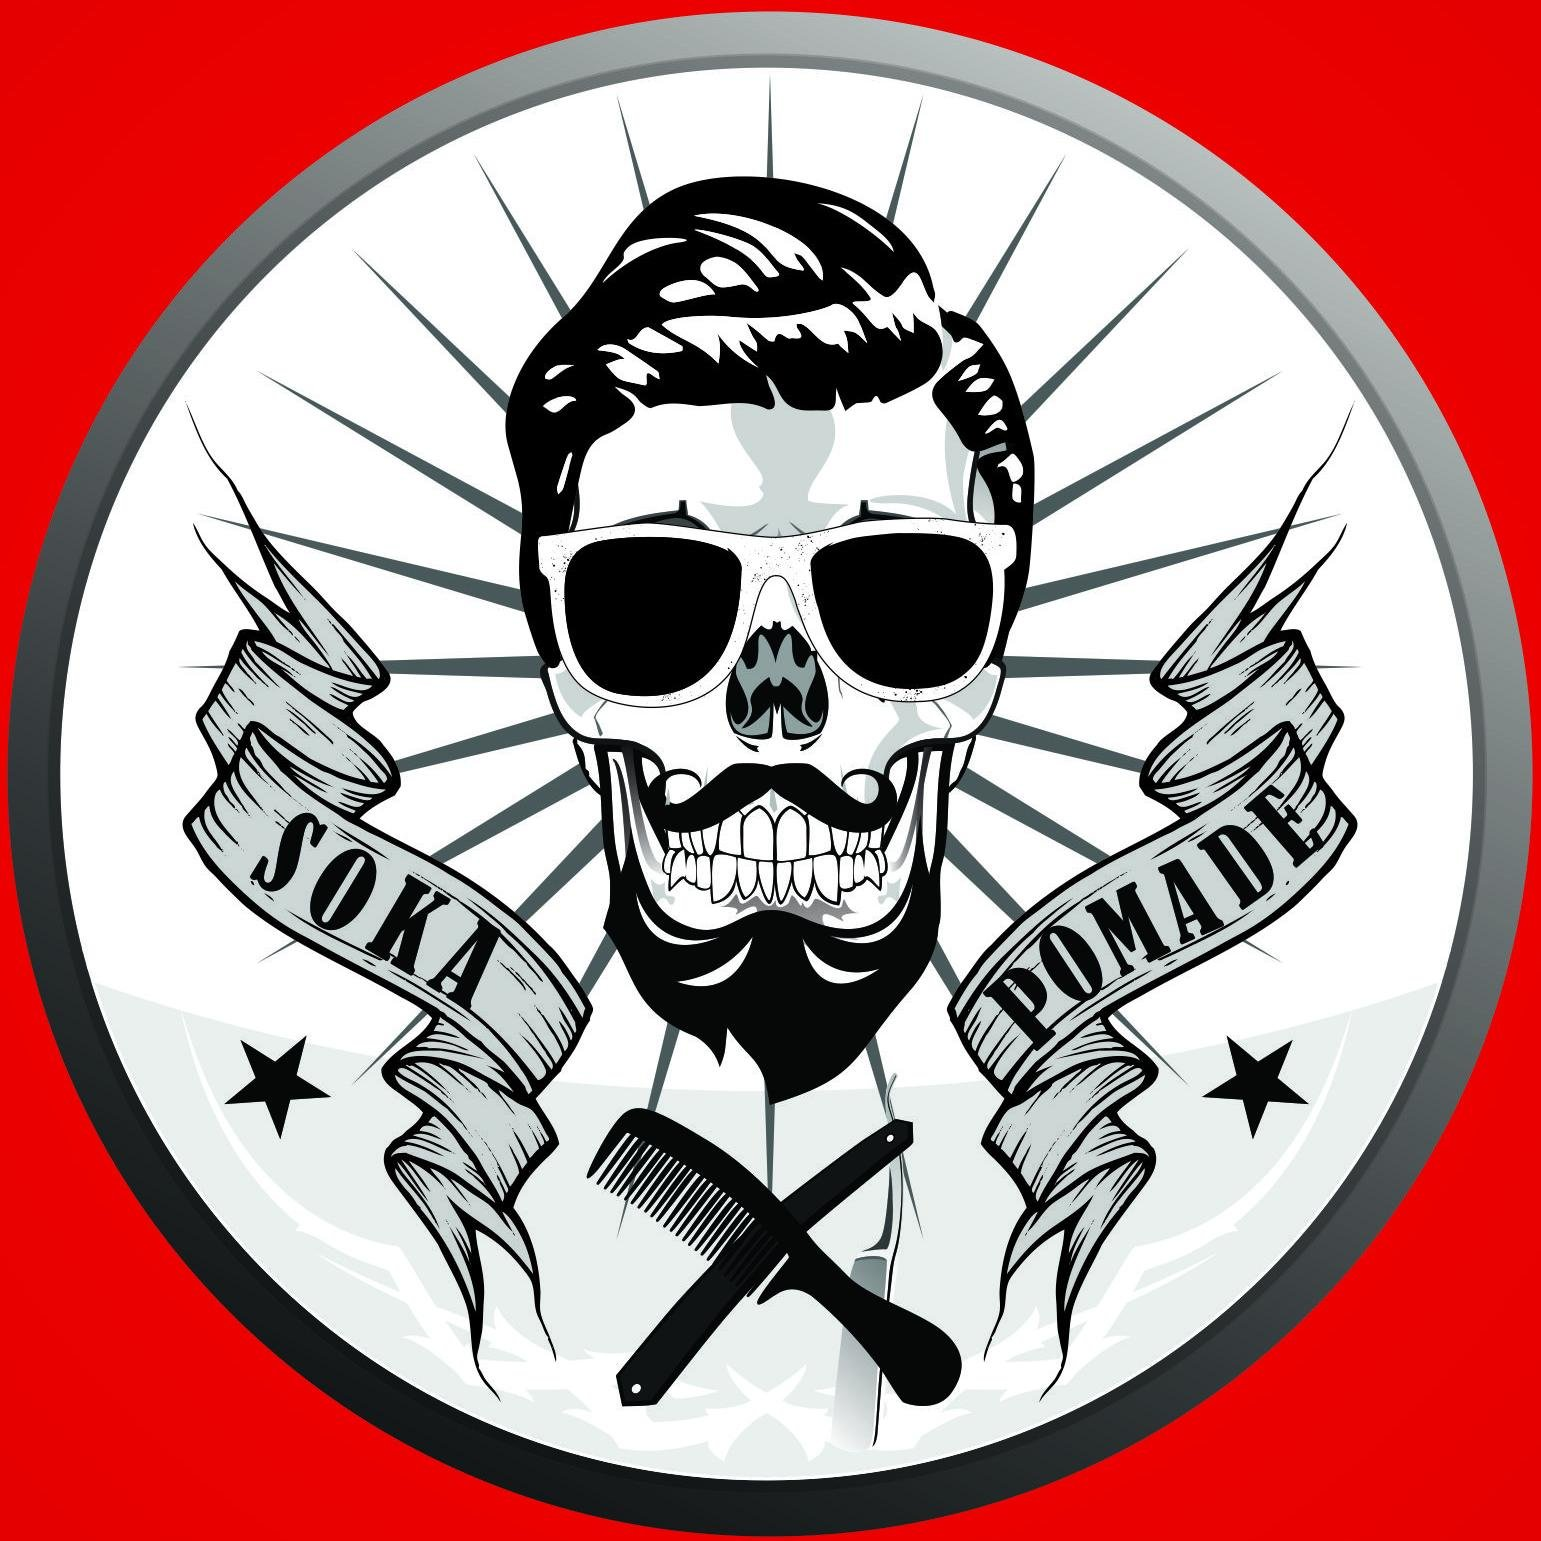 Jual Pomade Malang On Twitter Switchblade Comb Material Switch Blade Sisir